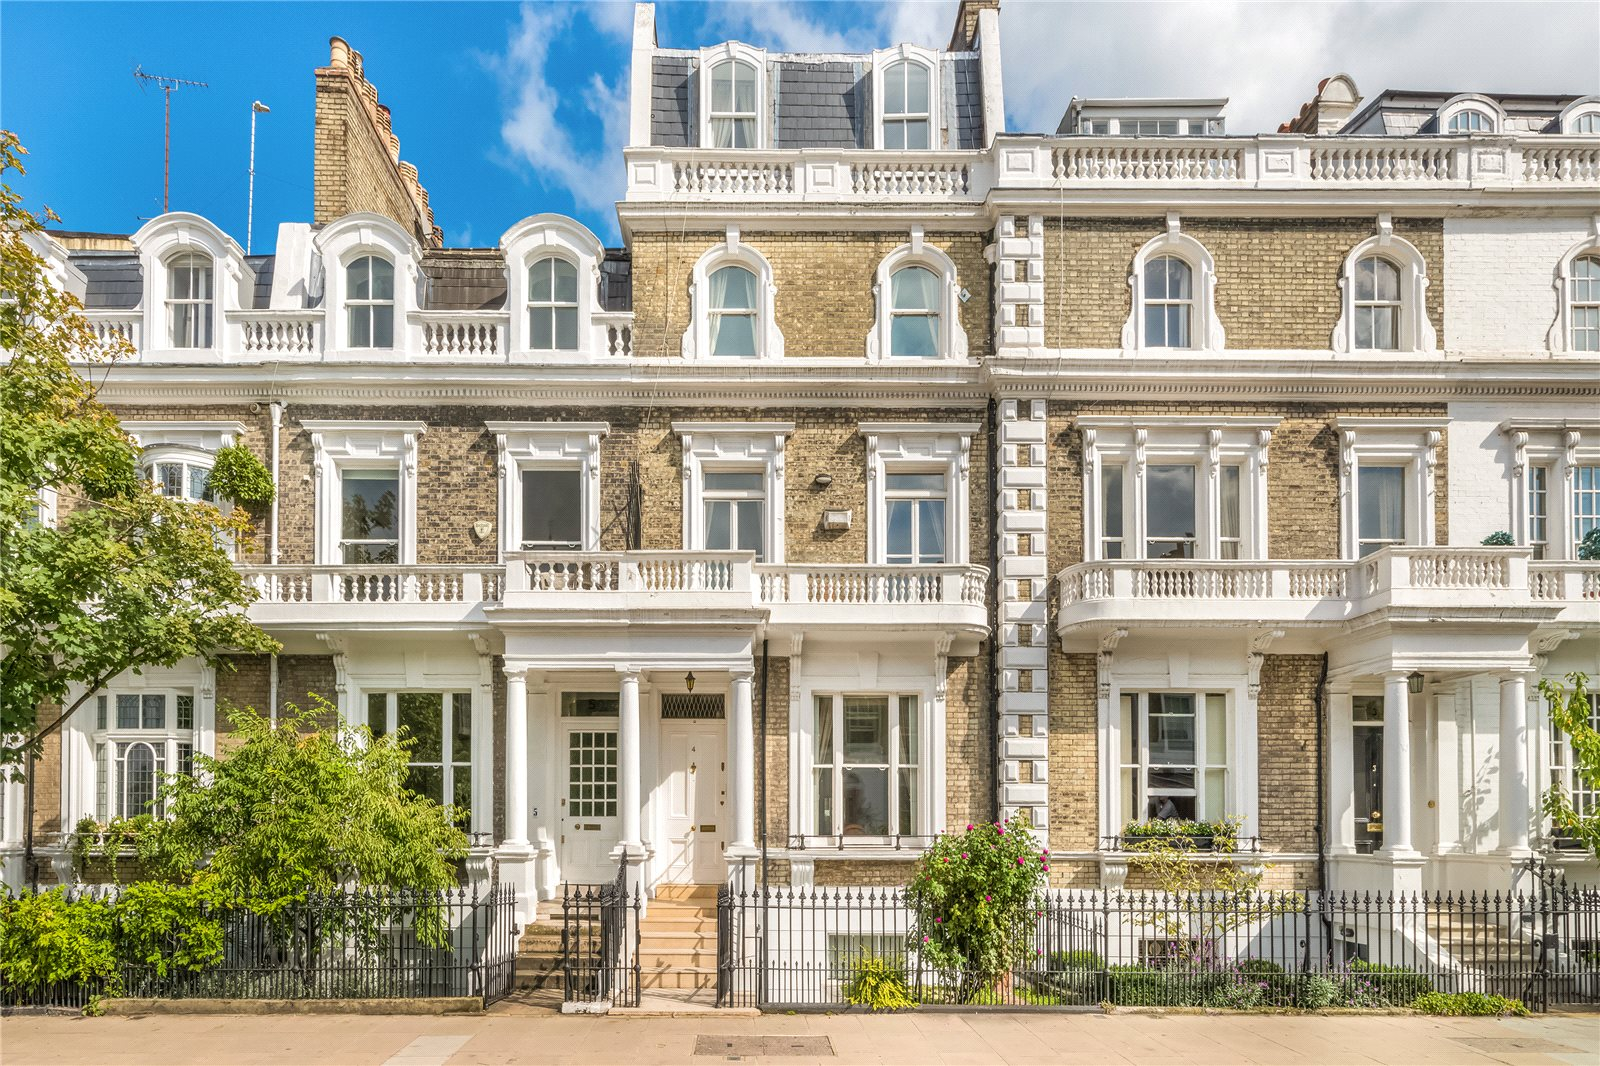 Частный дом для того Продажа на Neville Terrace, South Kensington, London, SW7 South Kensington, London, Англия